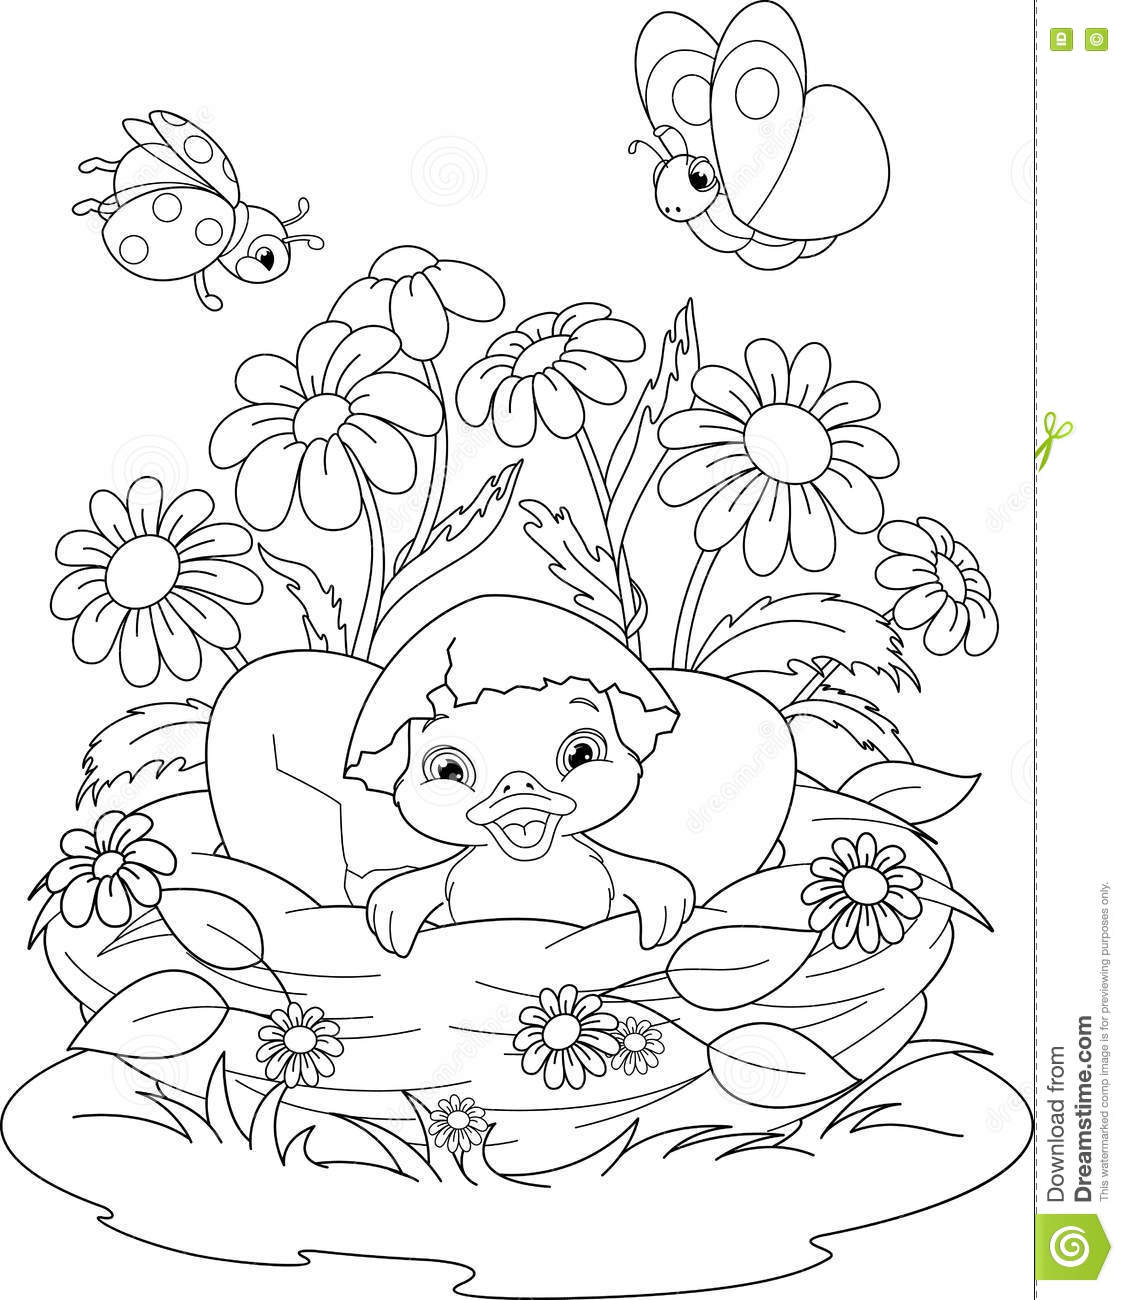 Duckling Coloring Page stock vector. Illustration of vector - 79779215